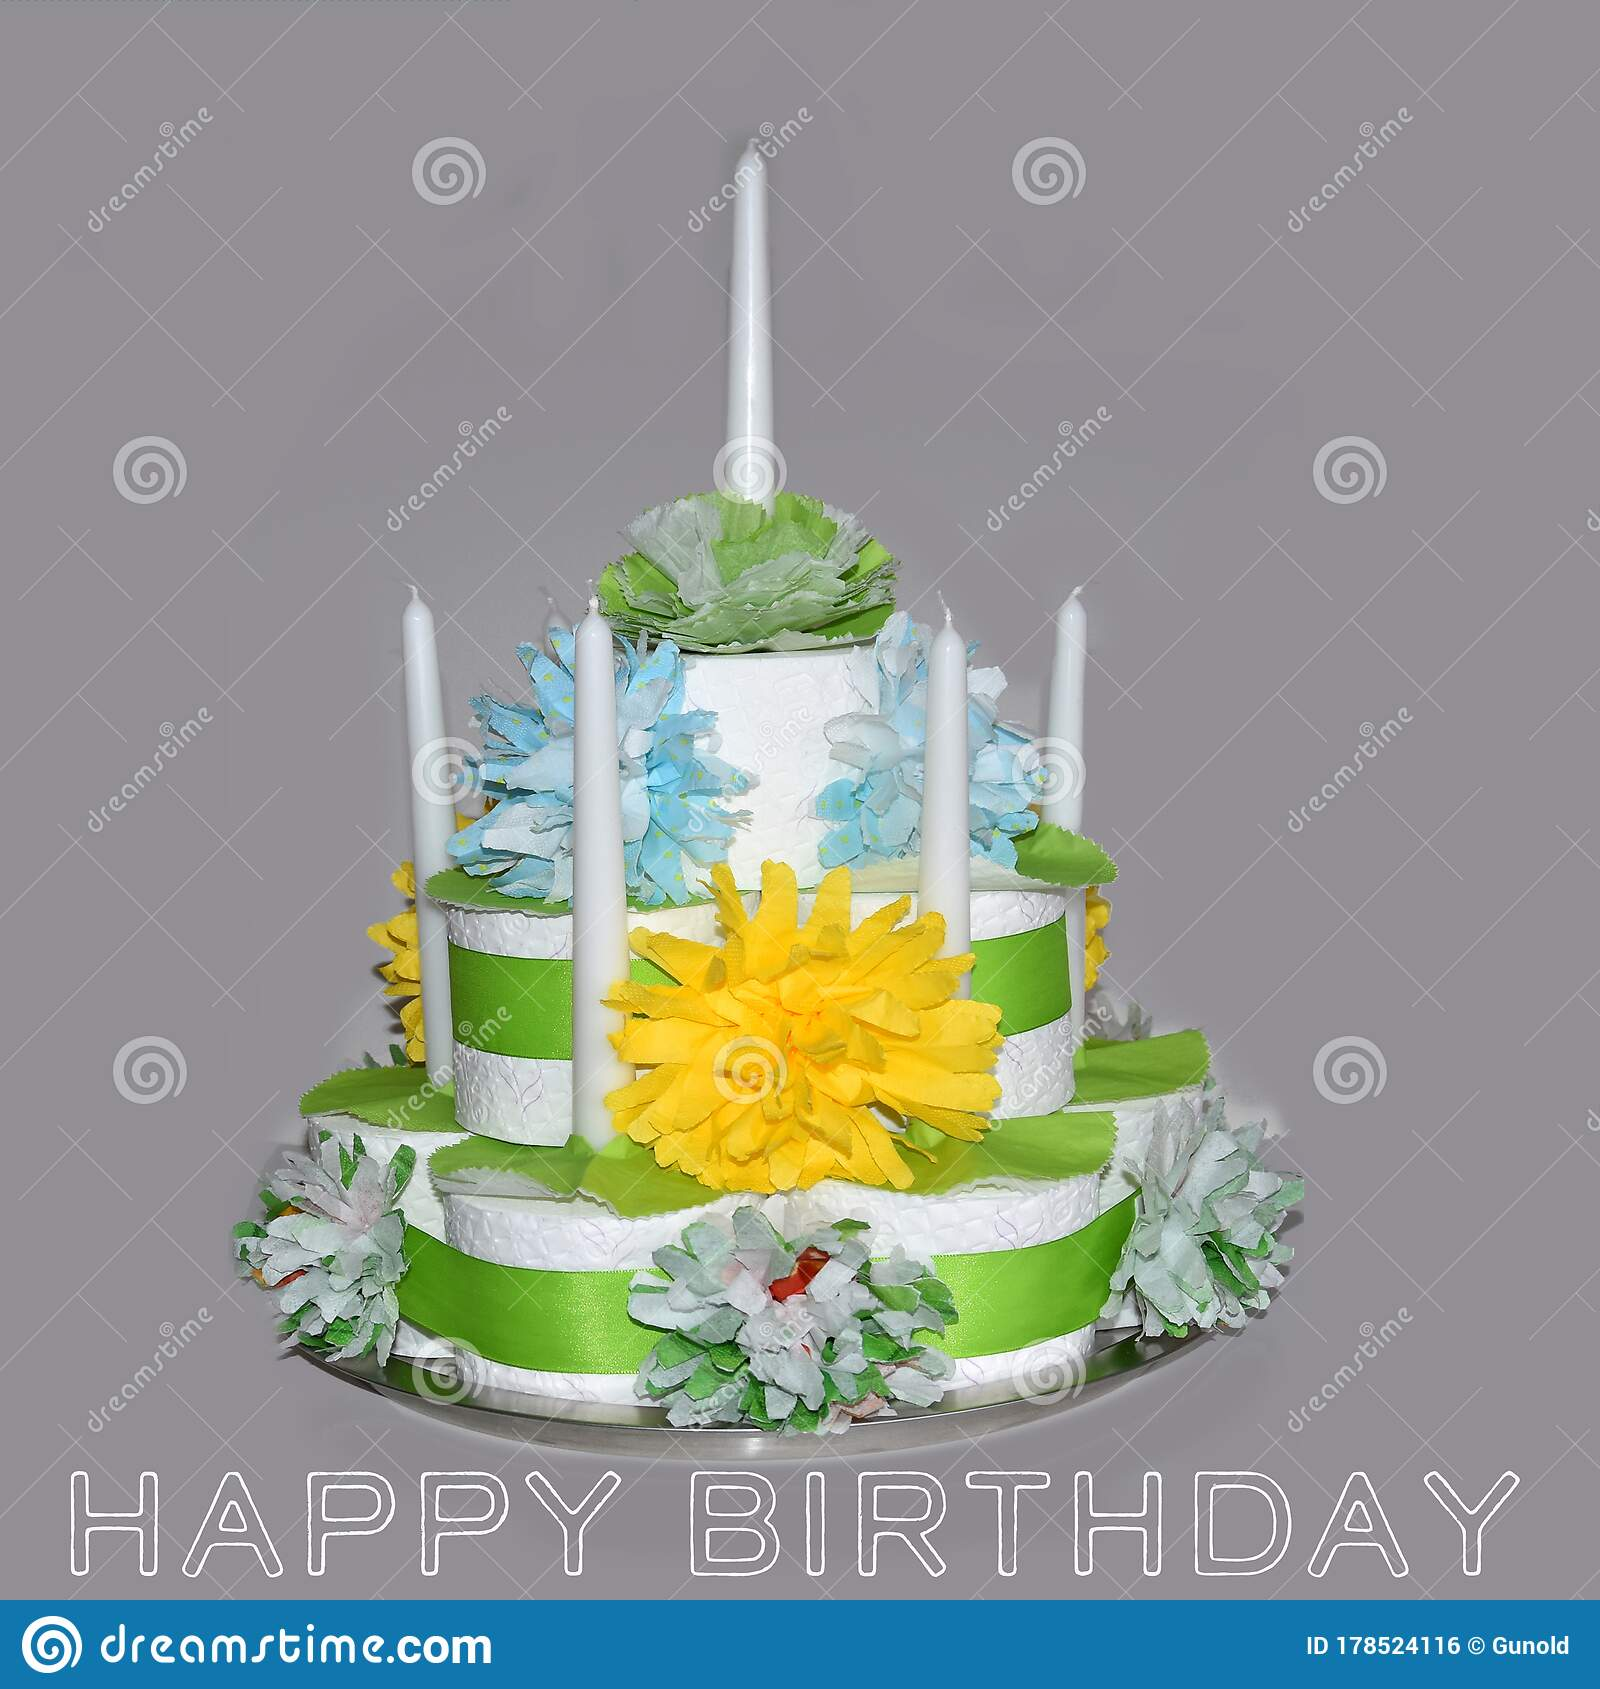 Surprising Special Birthday Cake In Times Of Toilet Paper Shortage Stock Personalised Birthday Cards Petedlily Jamesorg